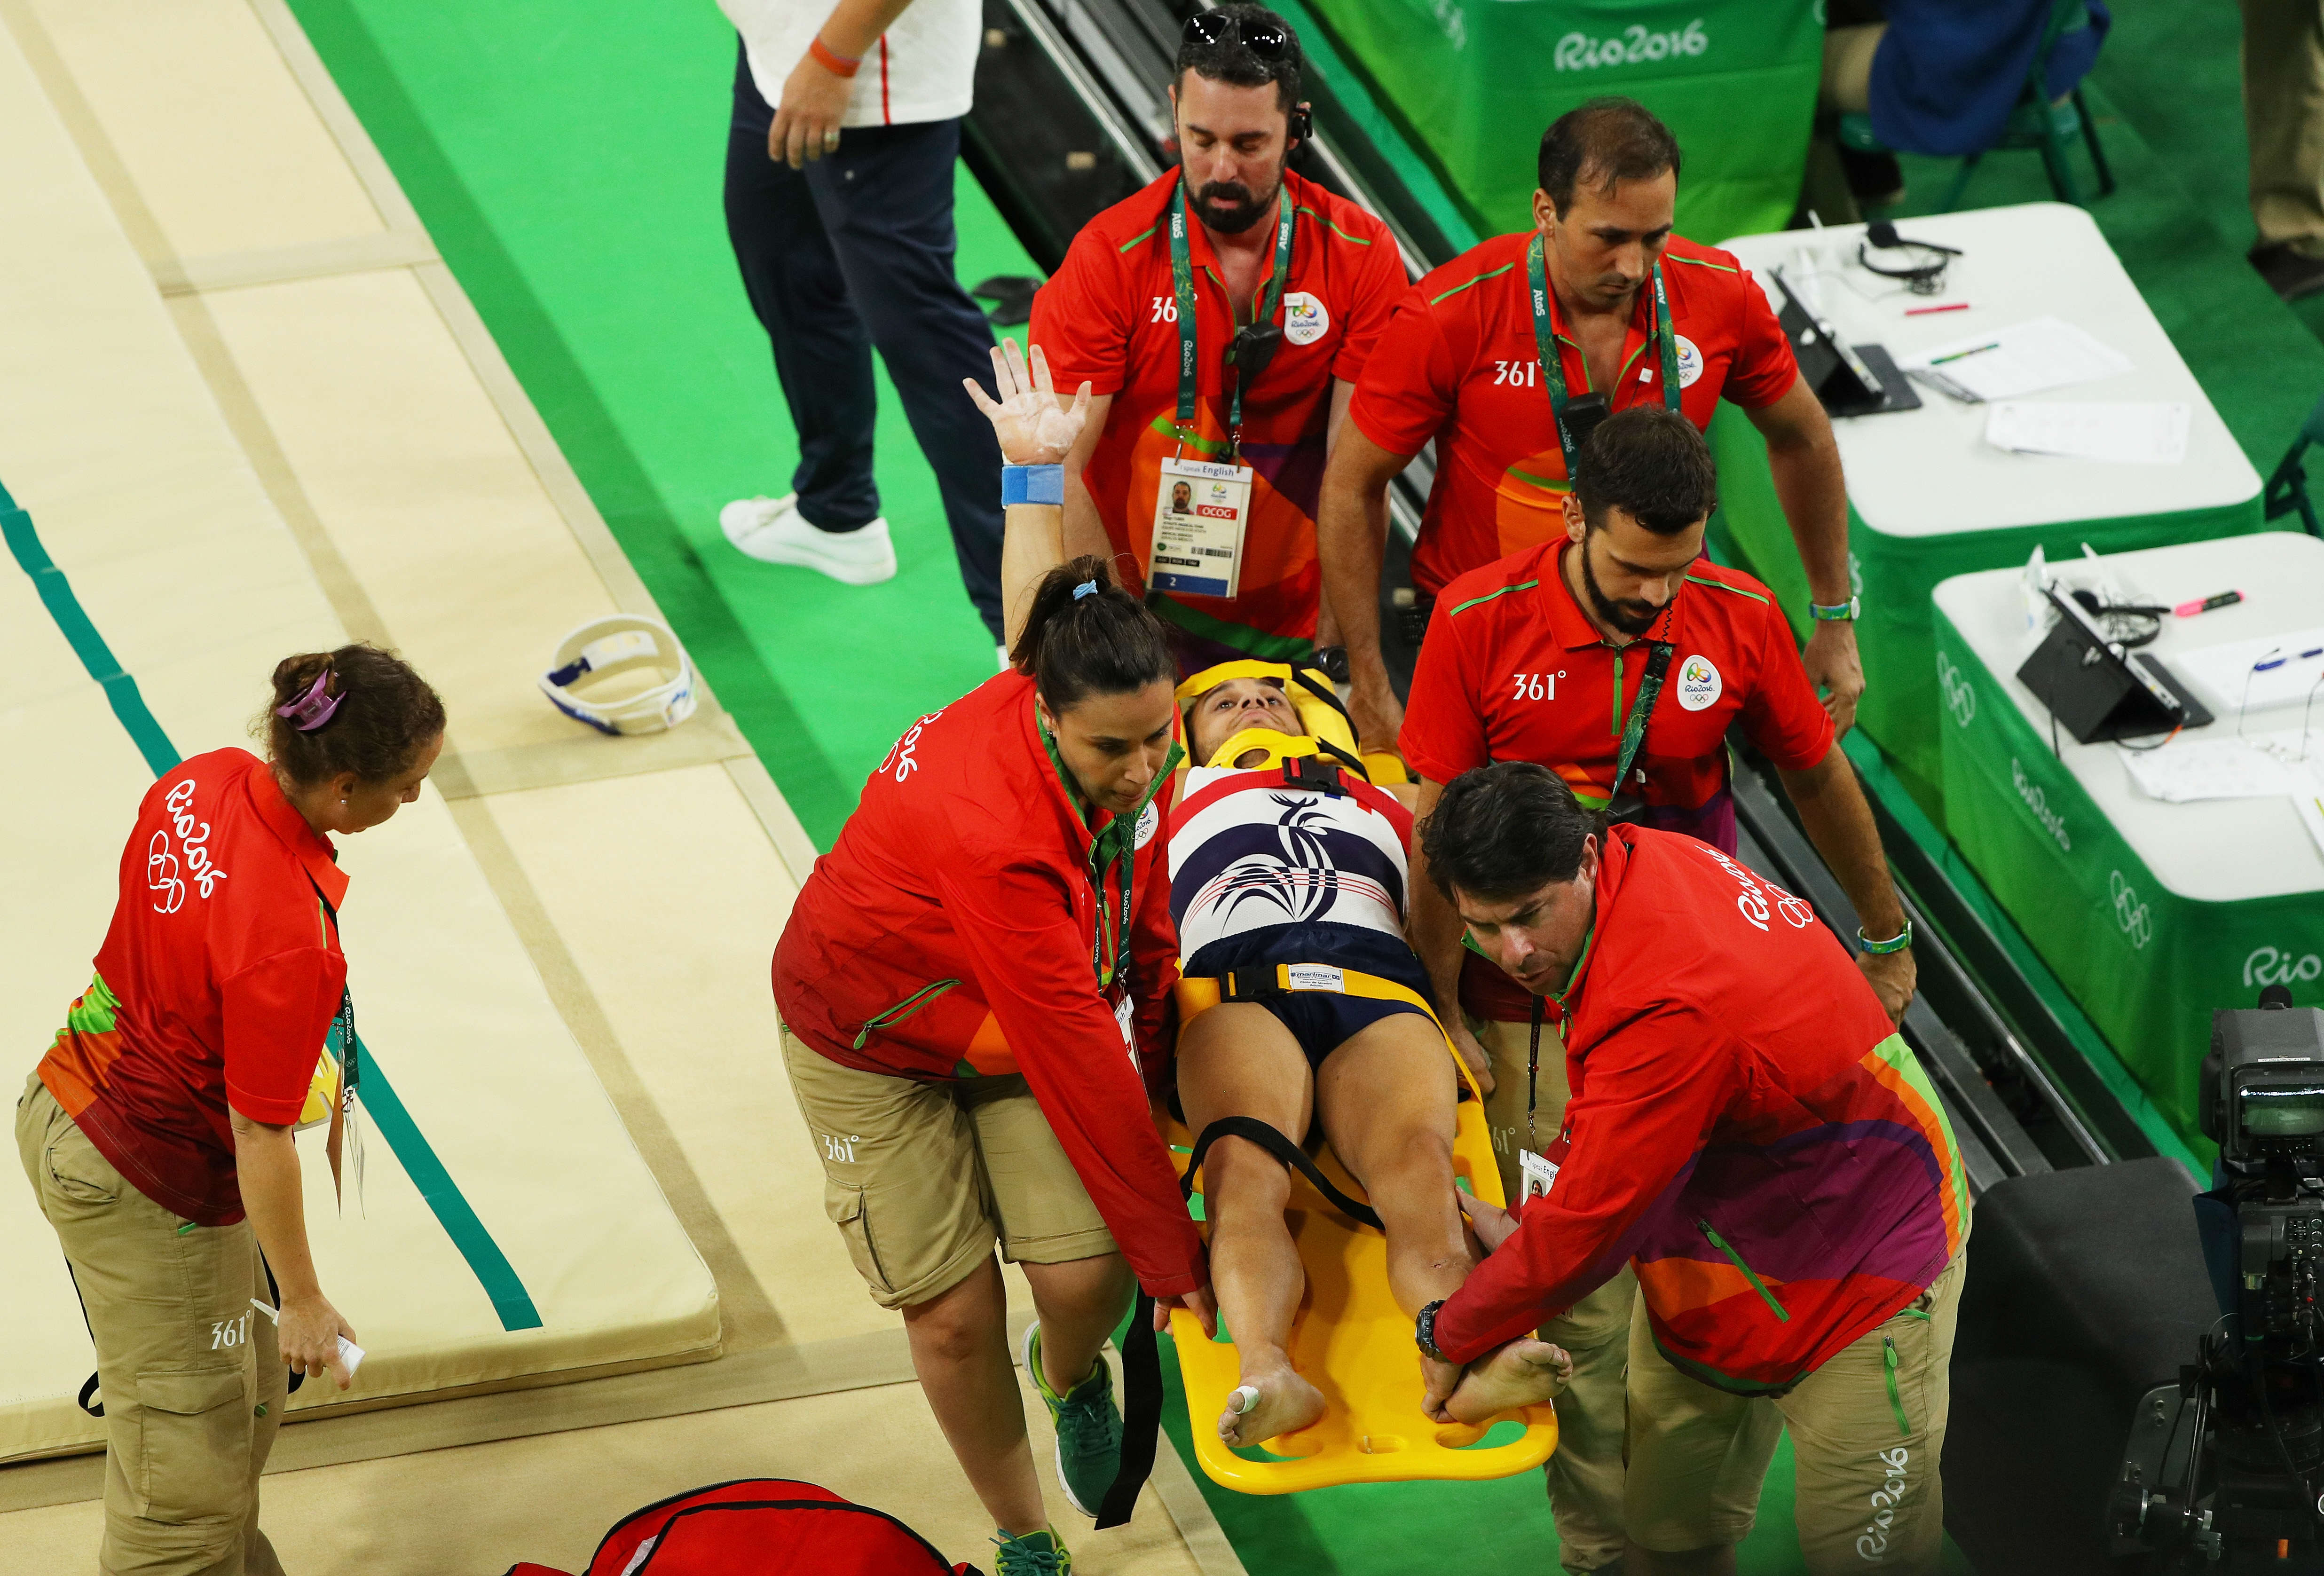 leg1 1 This Horrific Injury Might Be The Olympics Most Brutal Yet